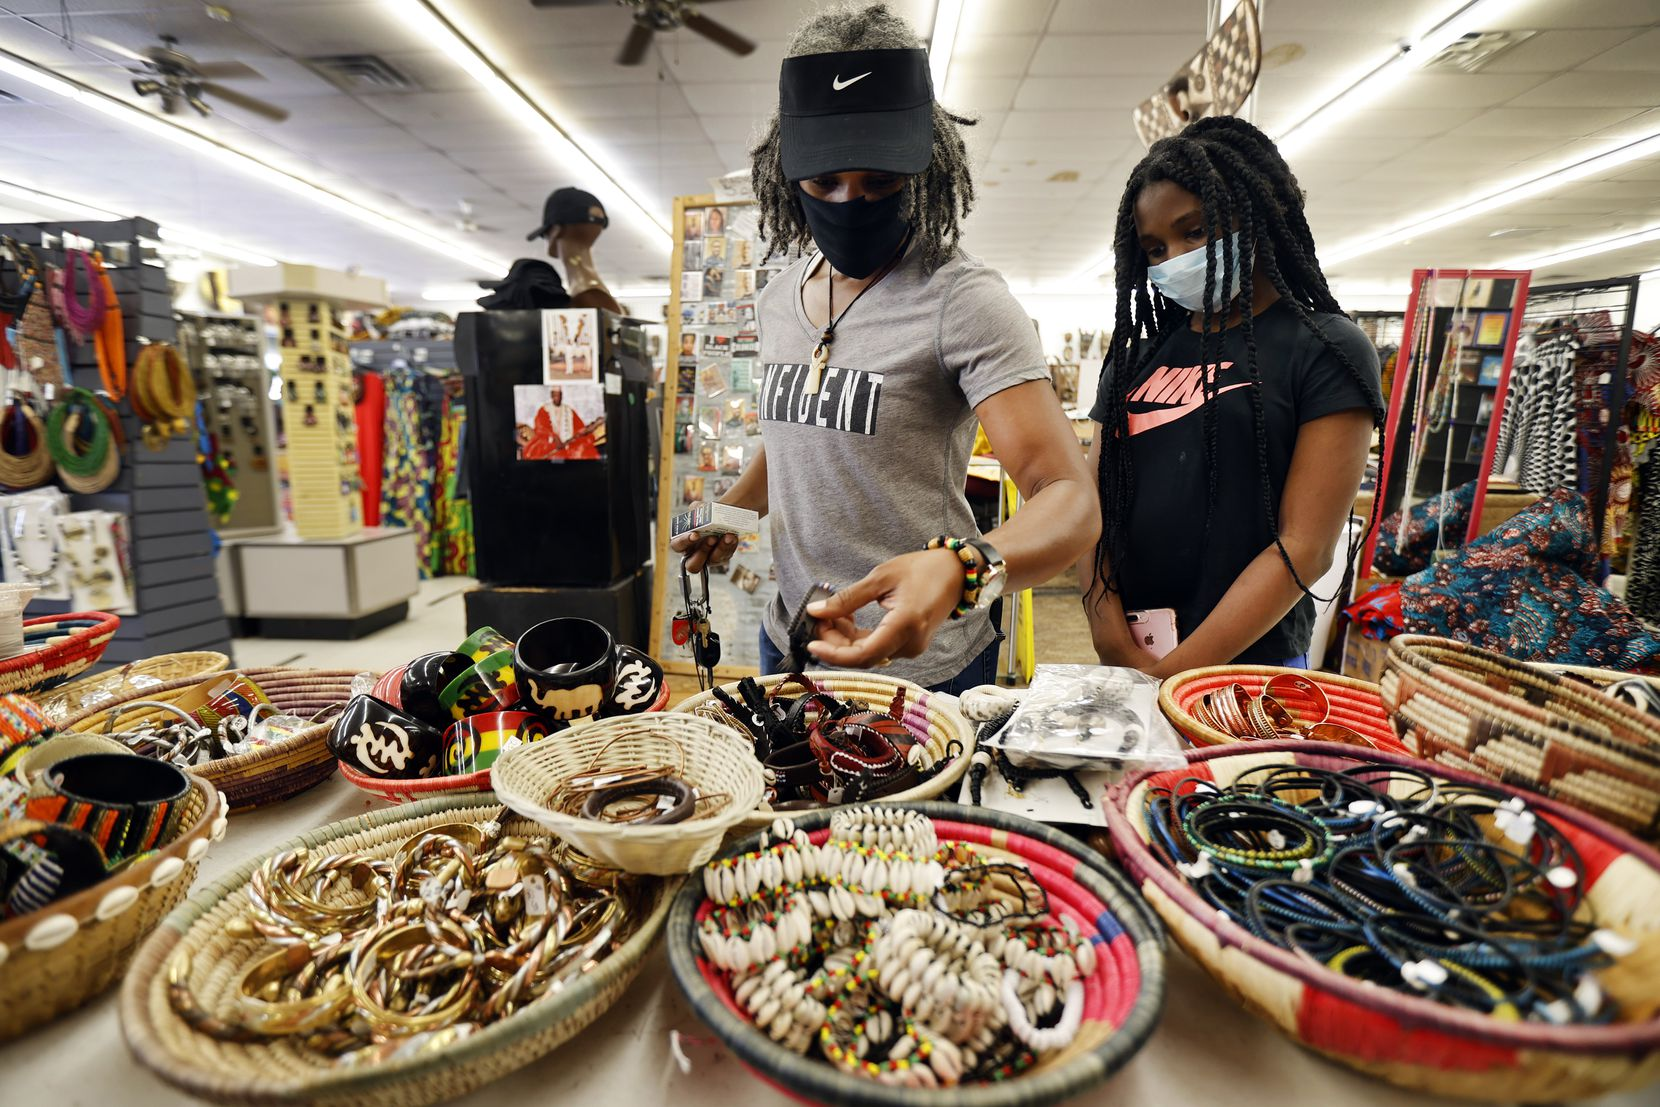 Charlene Turner and her niece Kamora, 12, of DeSoto, Texas shop at Pan-African Connection in Dallas, Thursday, July 2, 2020. (Tom Fox/The Dallas Morning News)